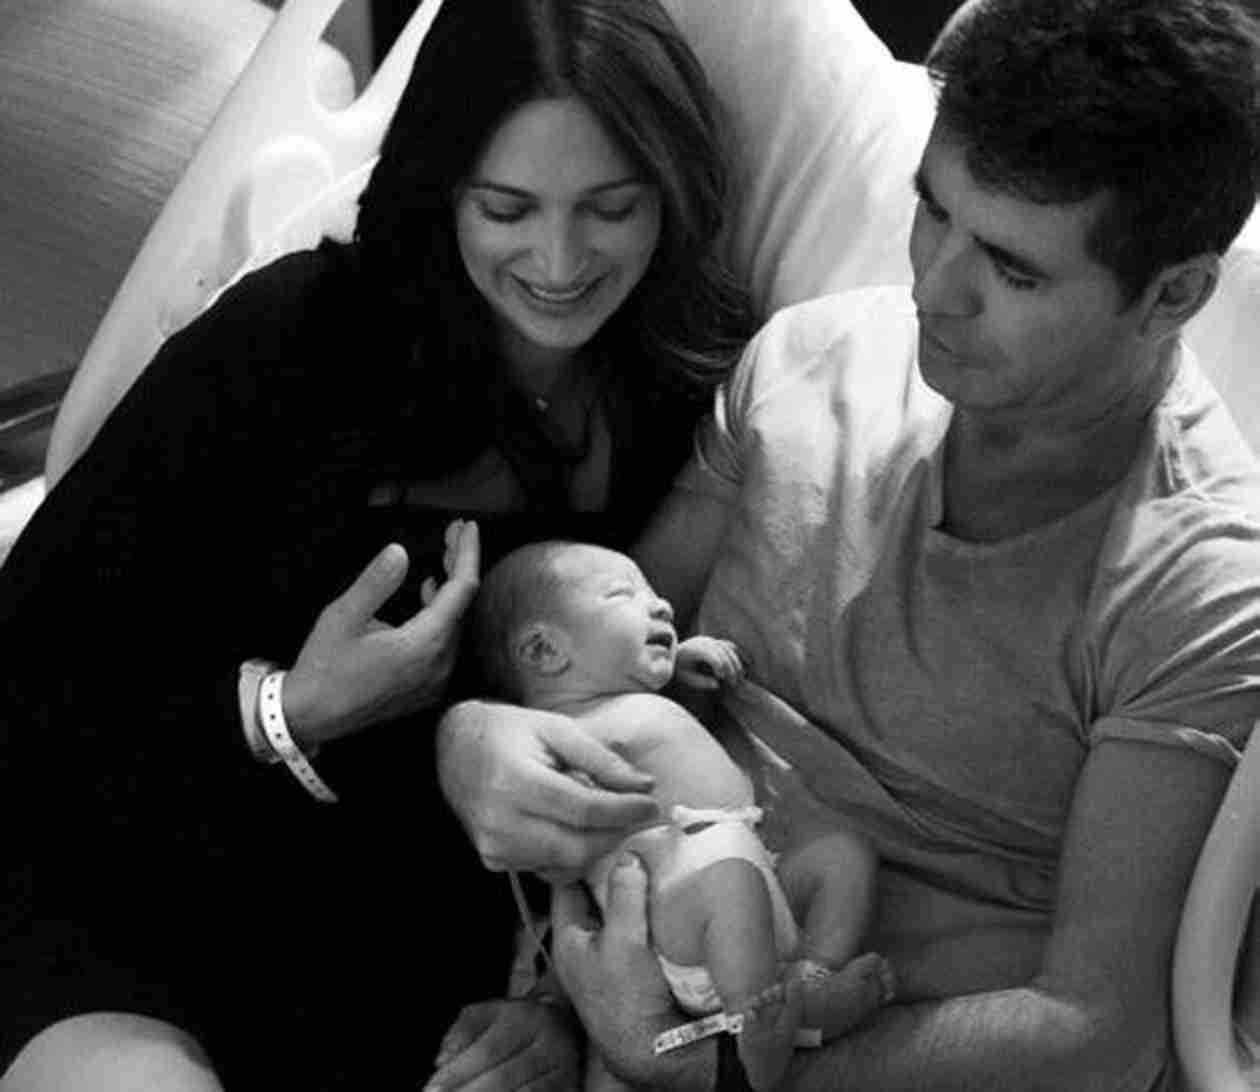 Simon Cowell Gives Son Eric a Bath — See the Sweet Moment! (PHOTO)